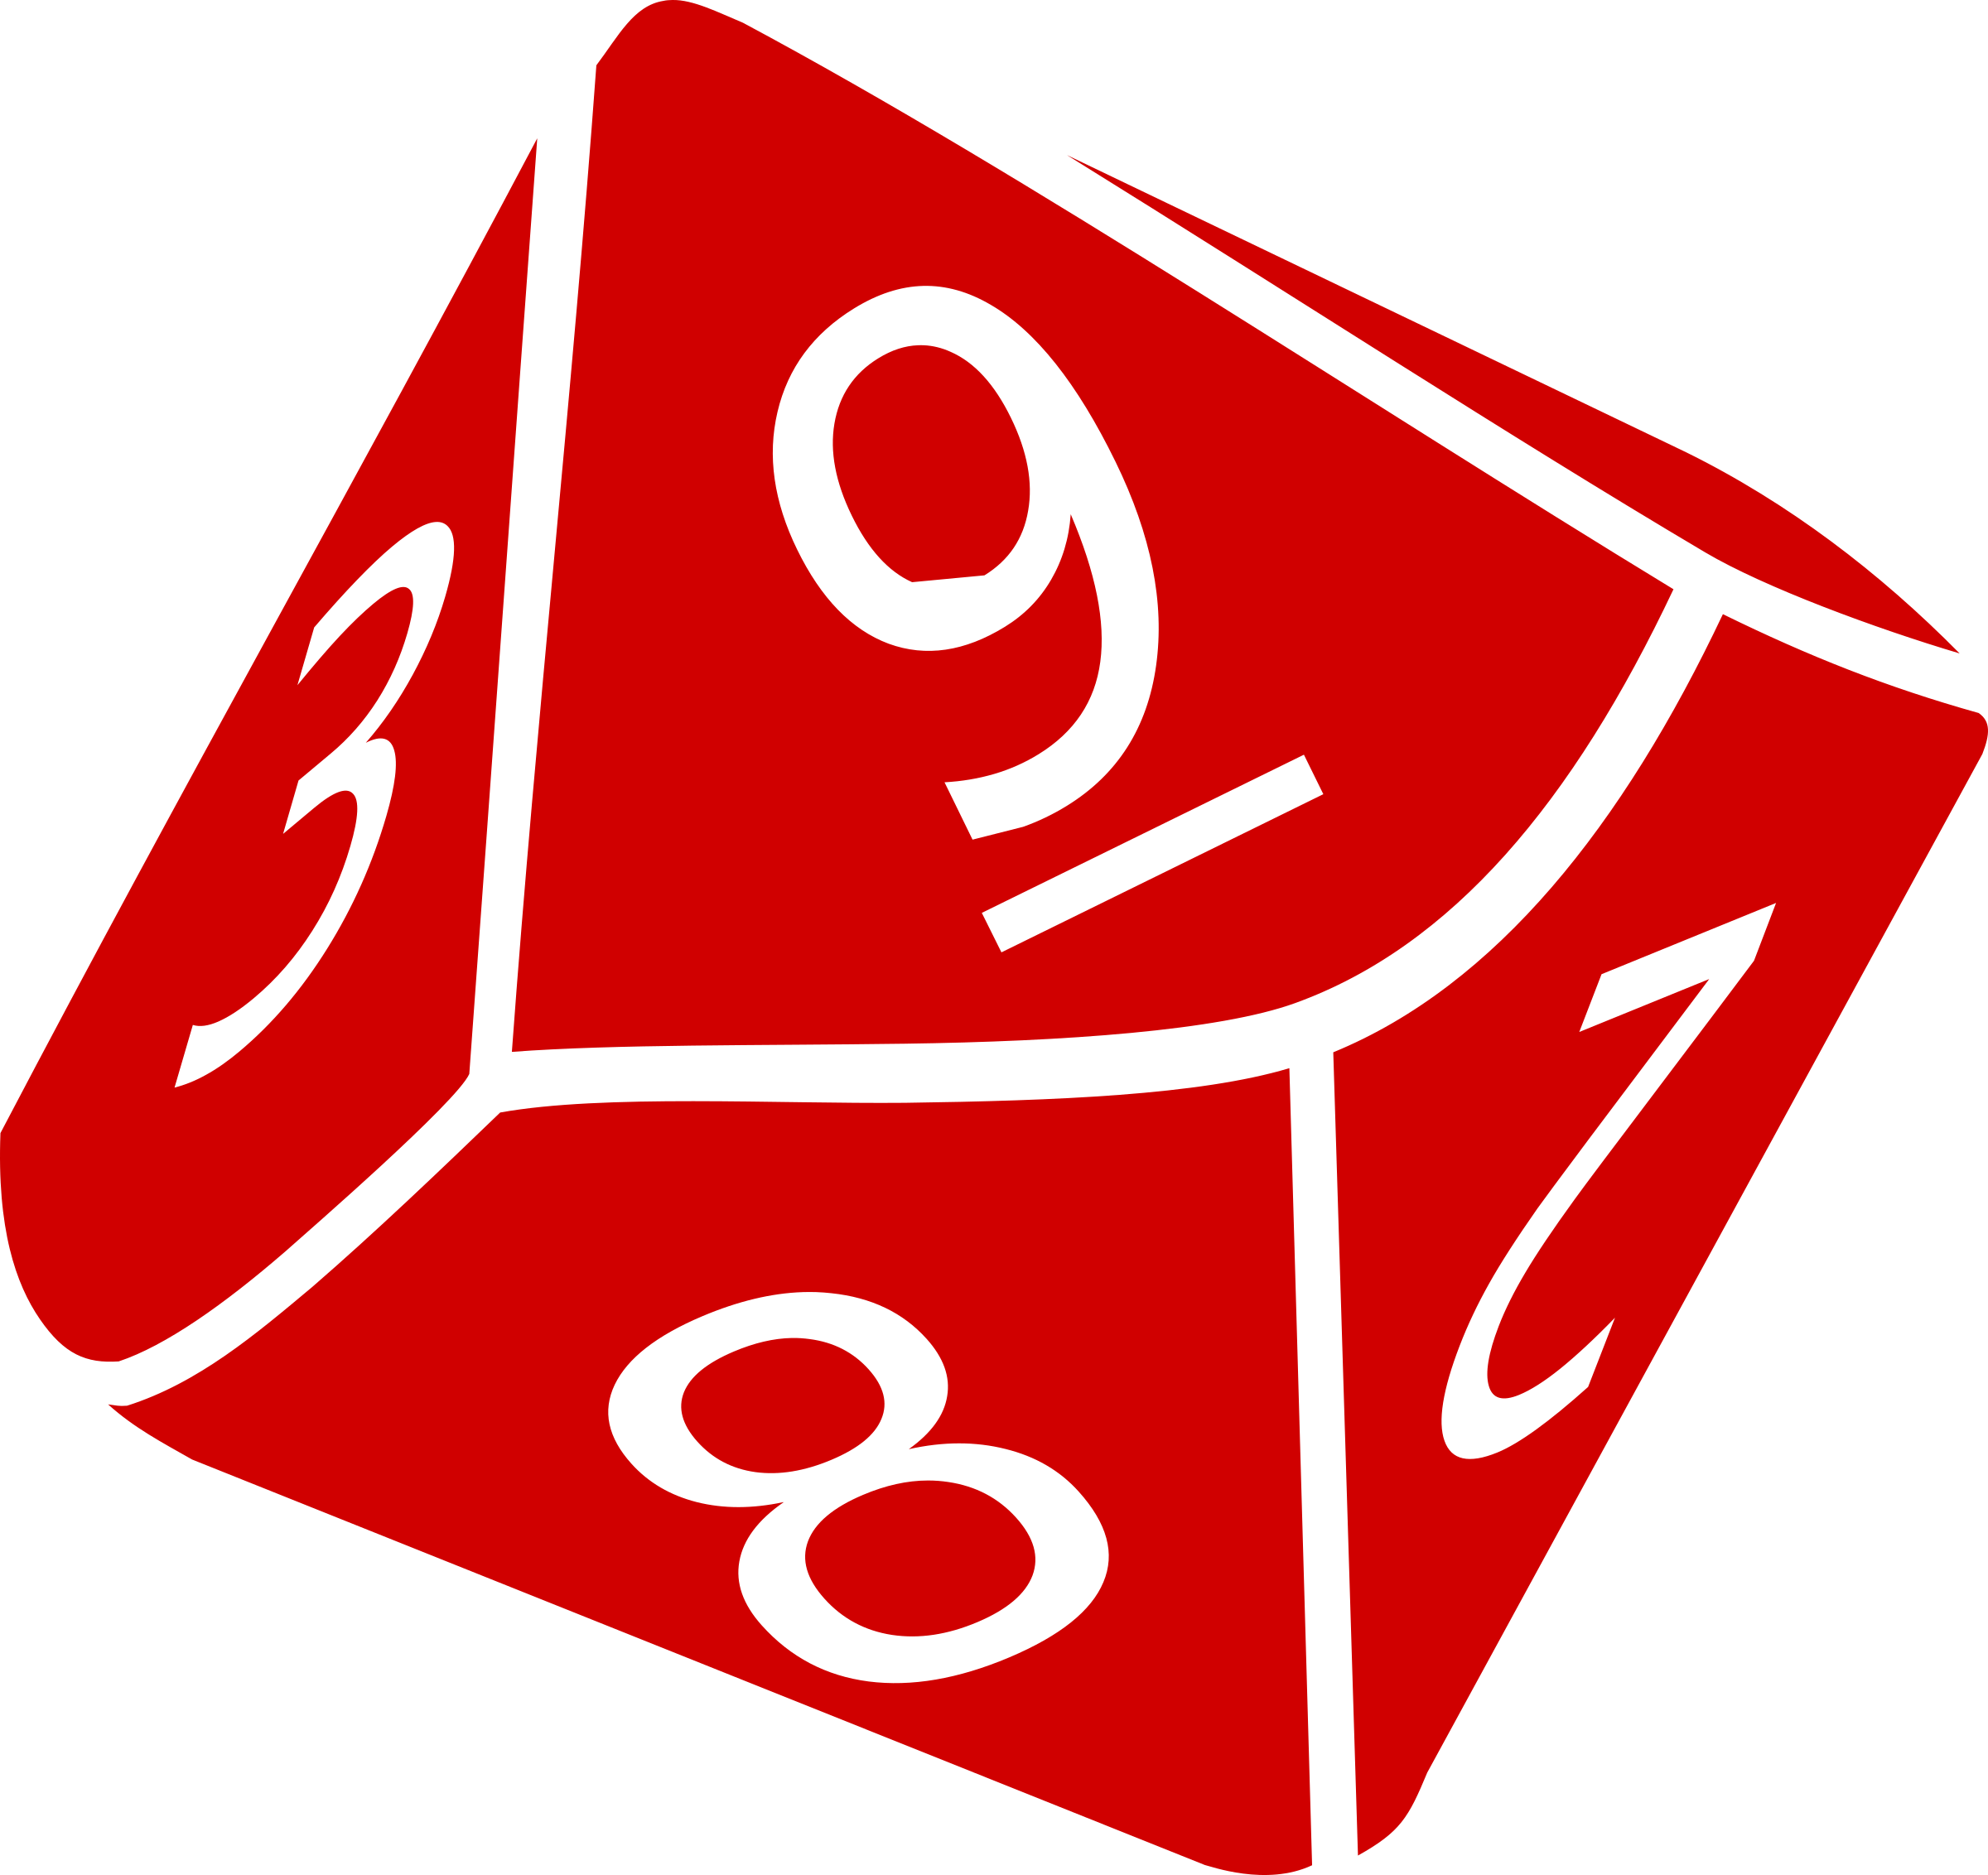 Dice clipart vector. Dnd images gallery for